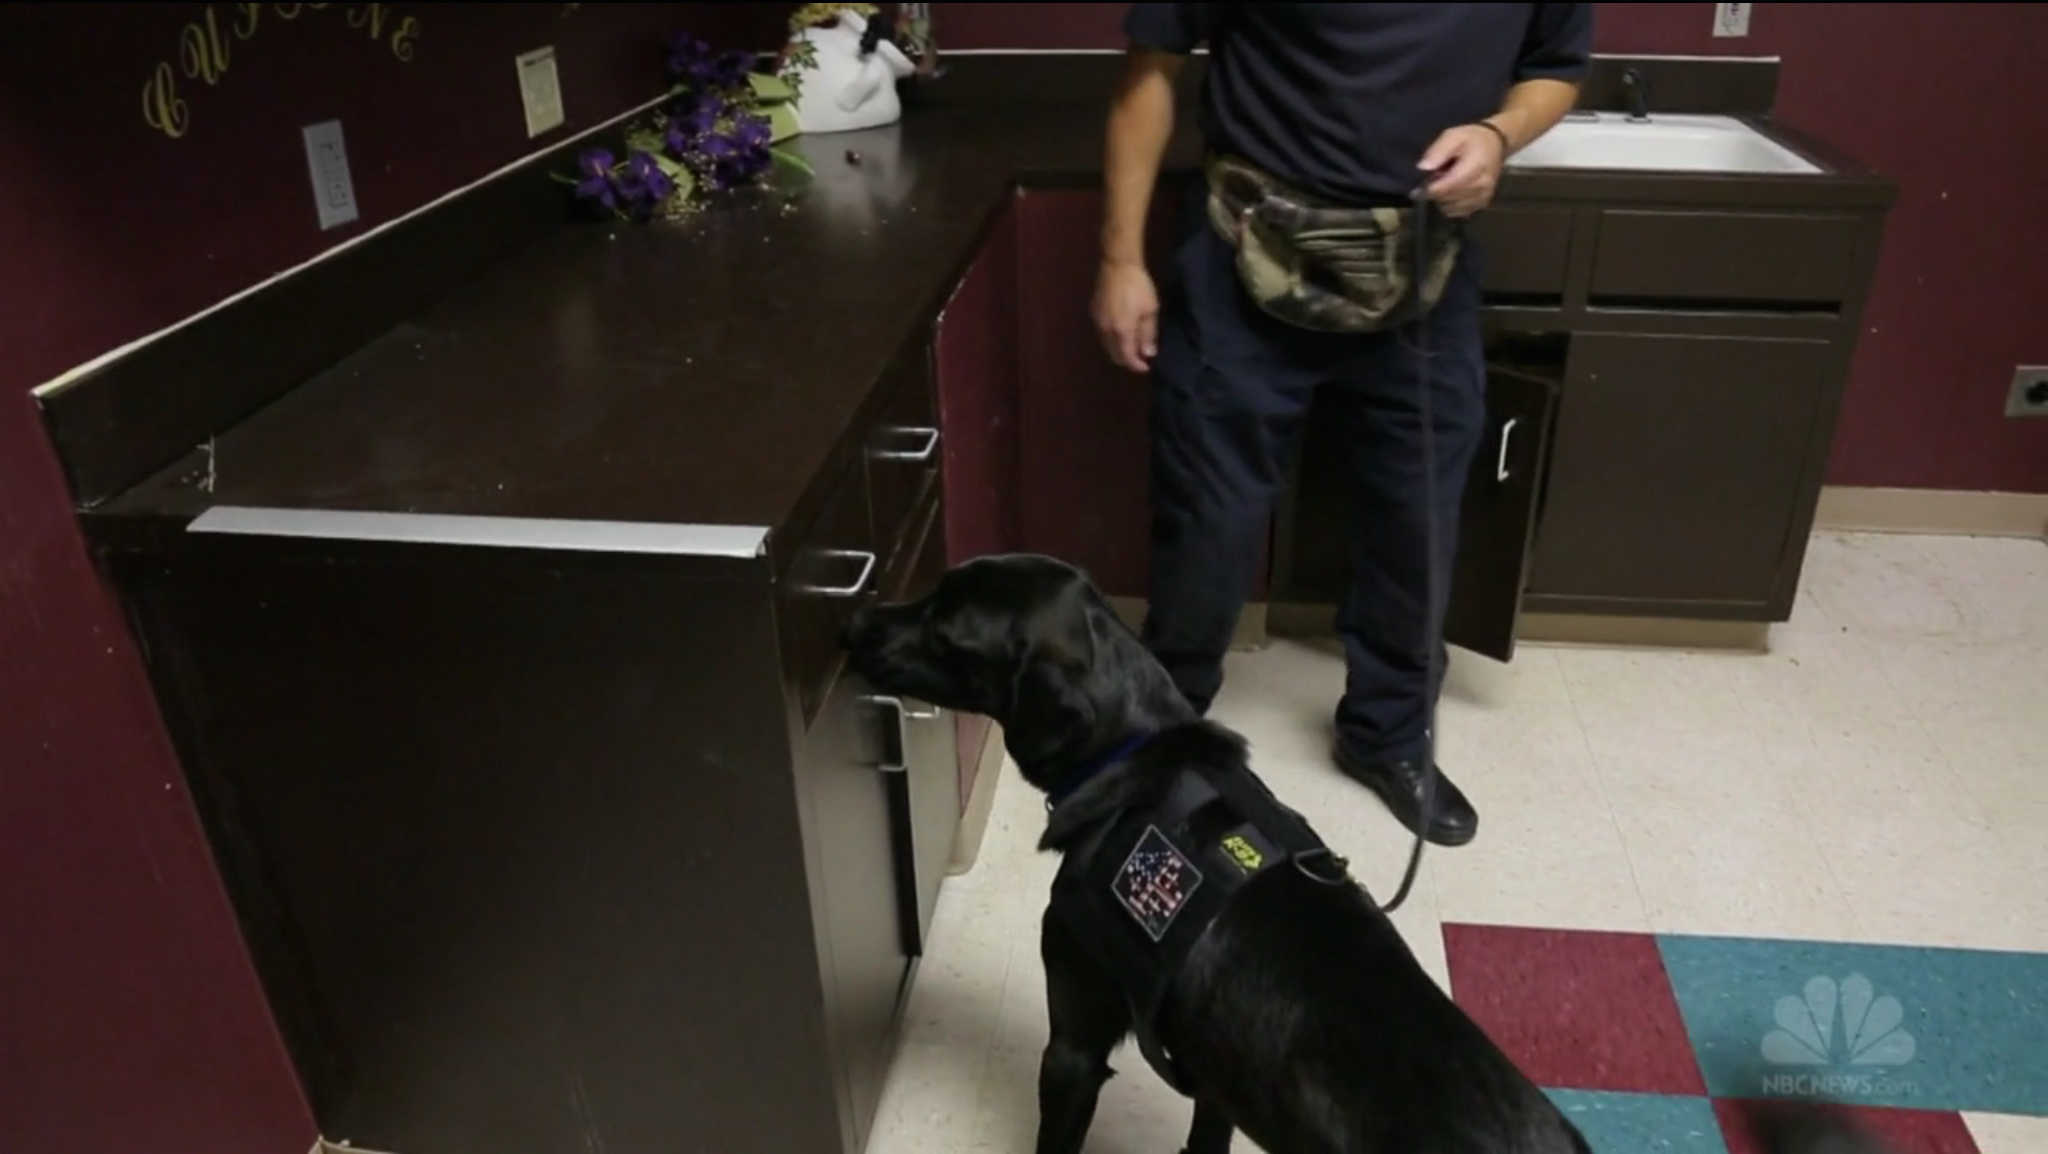 Bear is one of five electronics-sniffing dogs